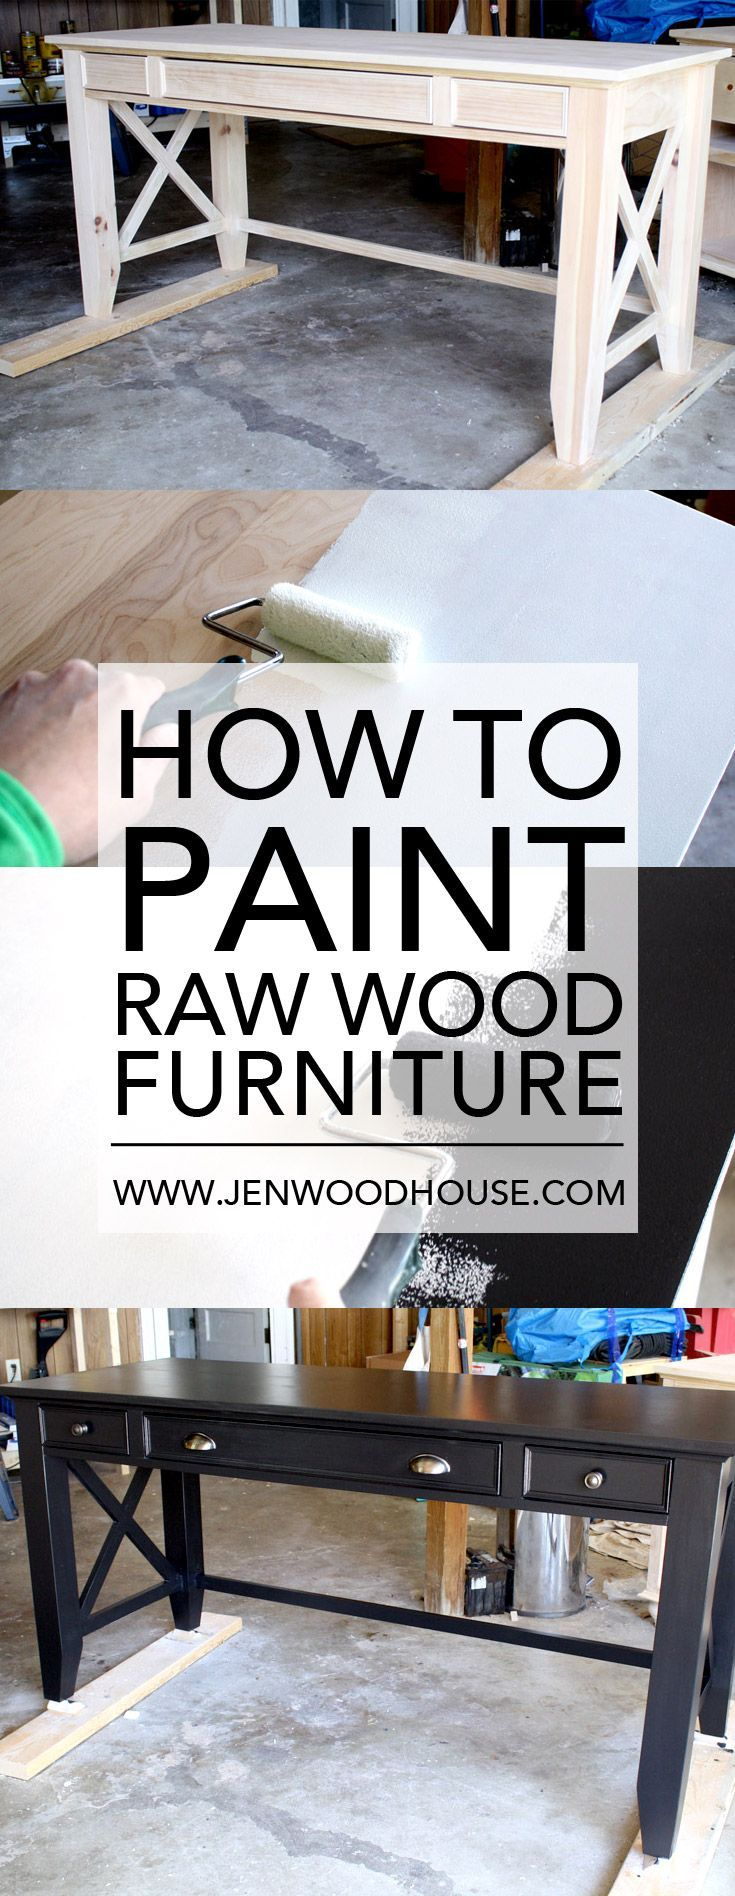 Great tutorial on how to paint raw wood furniture. She built the desk from scratch and gives you free plans and tutorial too!